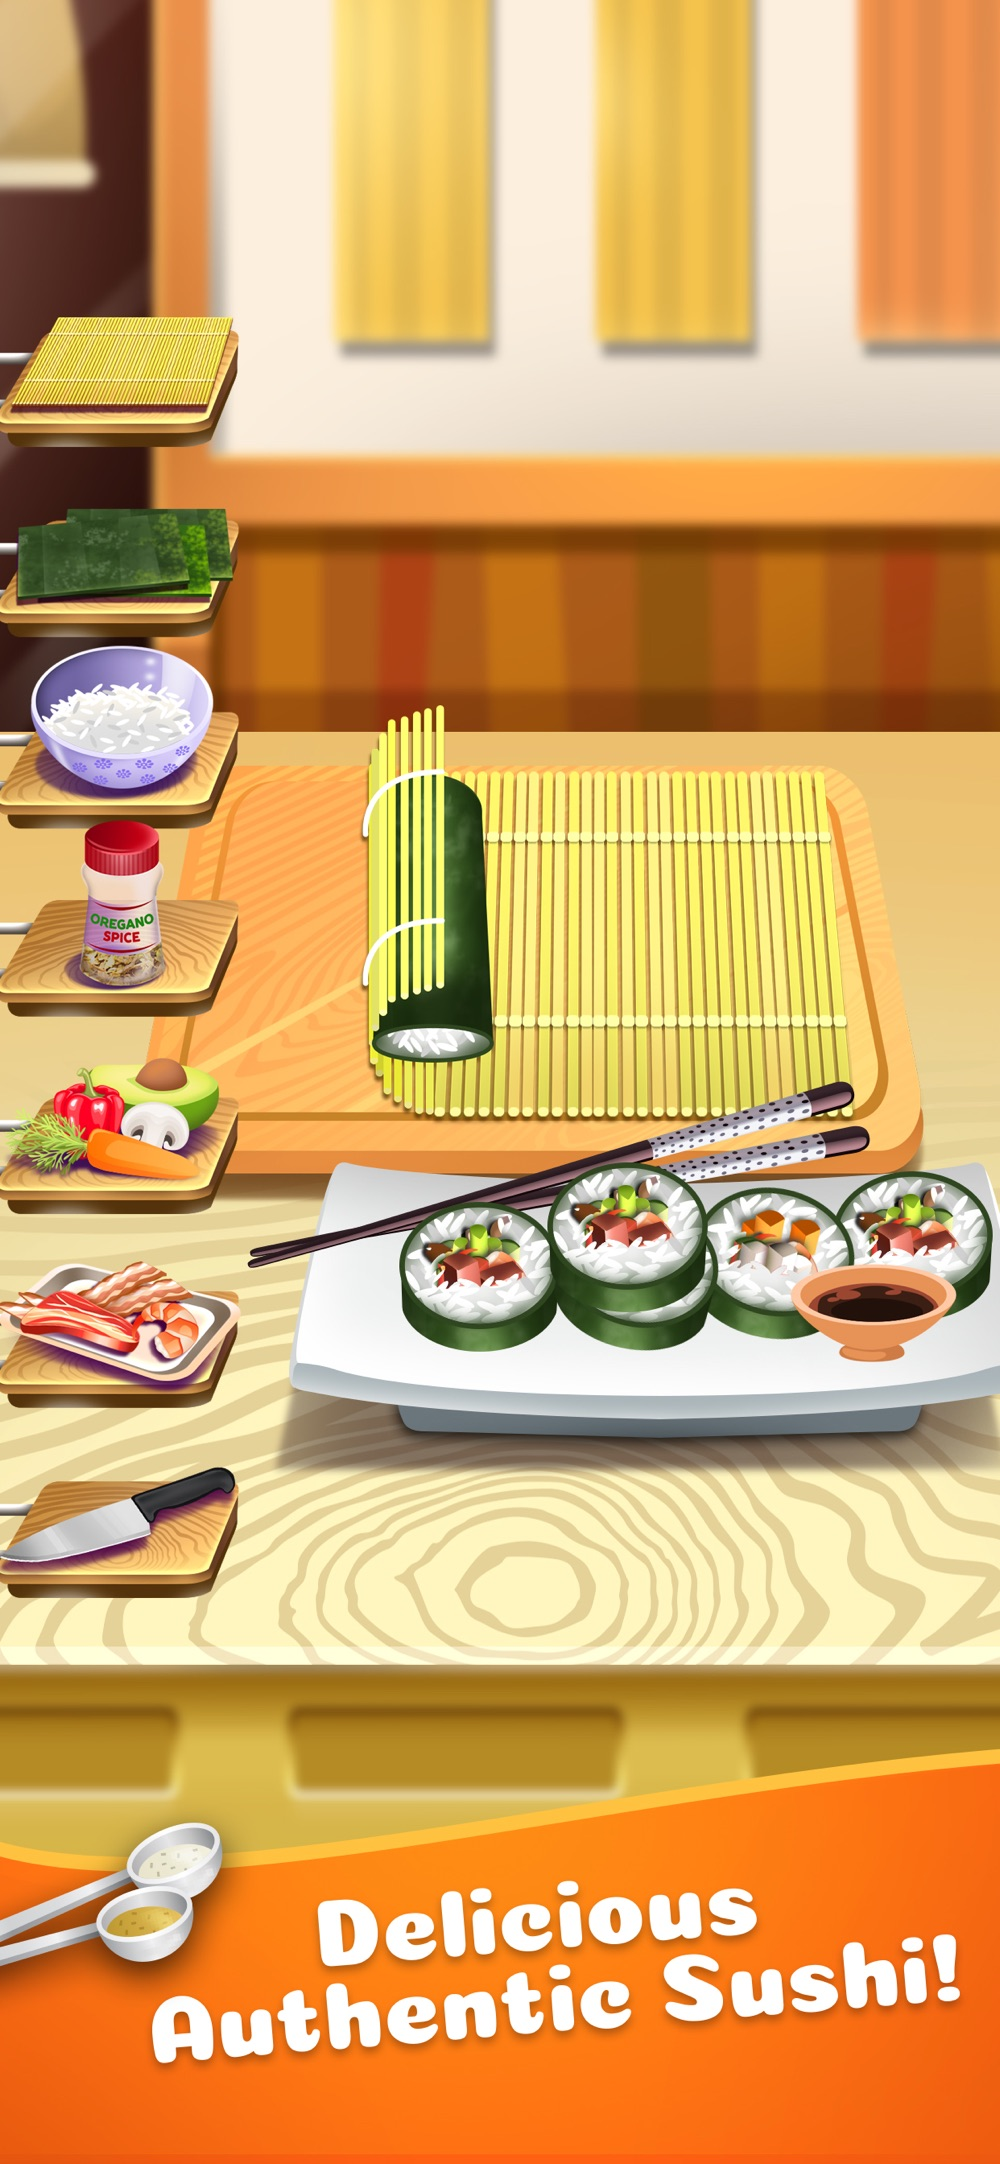 Sushi Food Maker Cooking Games Cheat Codes